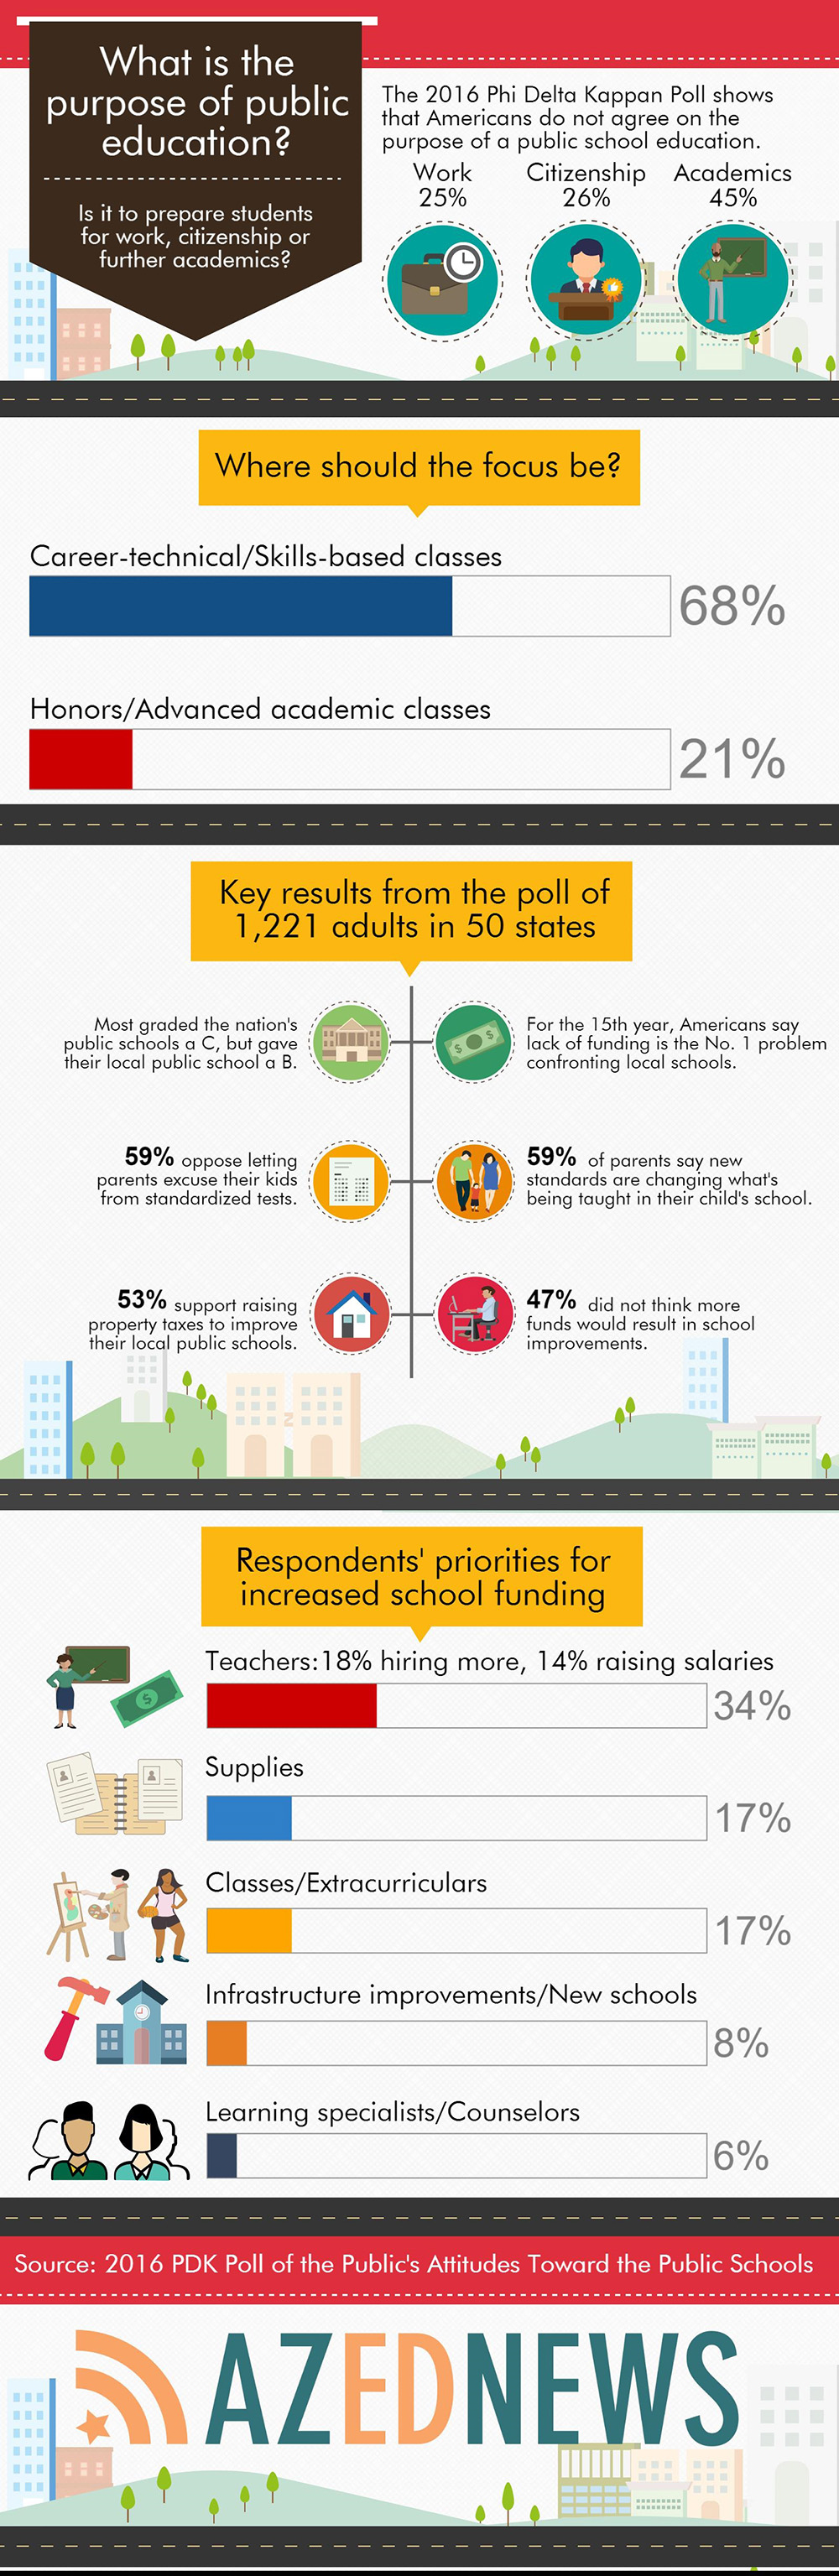 Purpose of Public Education AZEdNewsPDKPoll2016Infographic